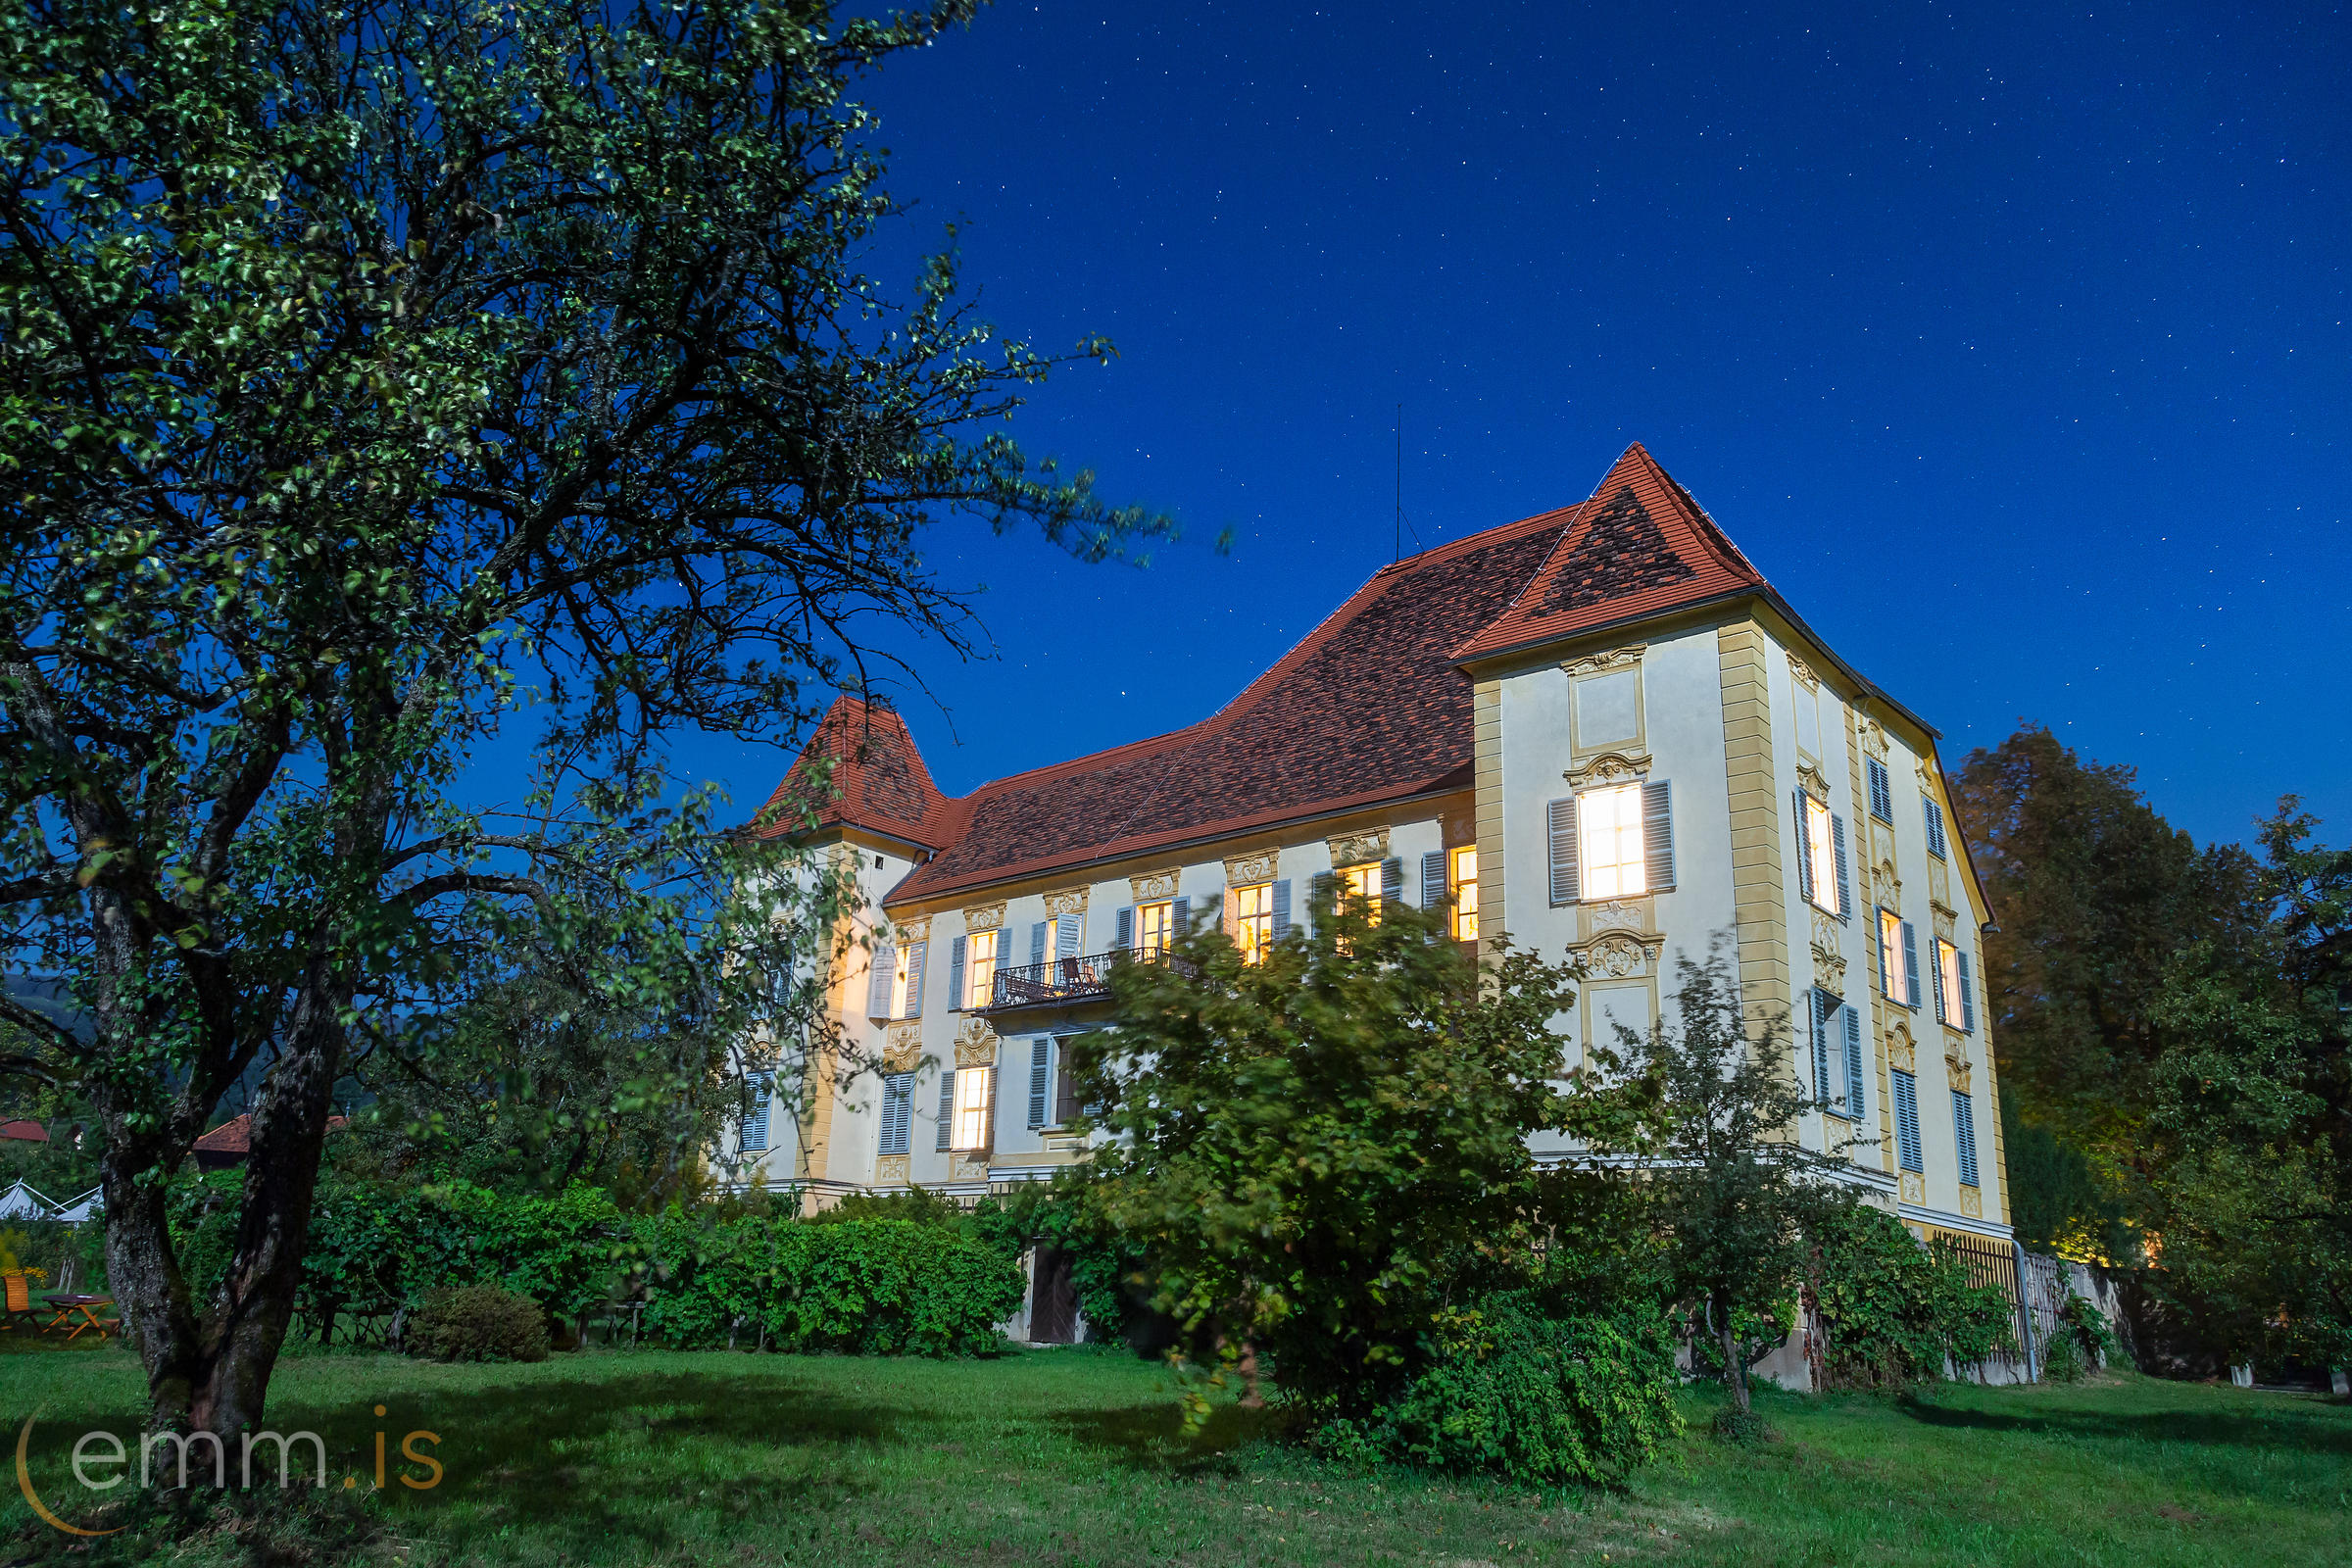 Schloss_Wildbach_in_Austria-5286